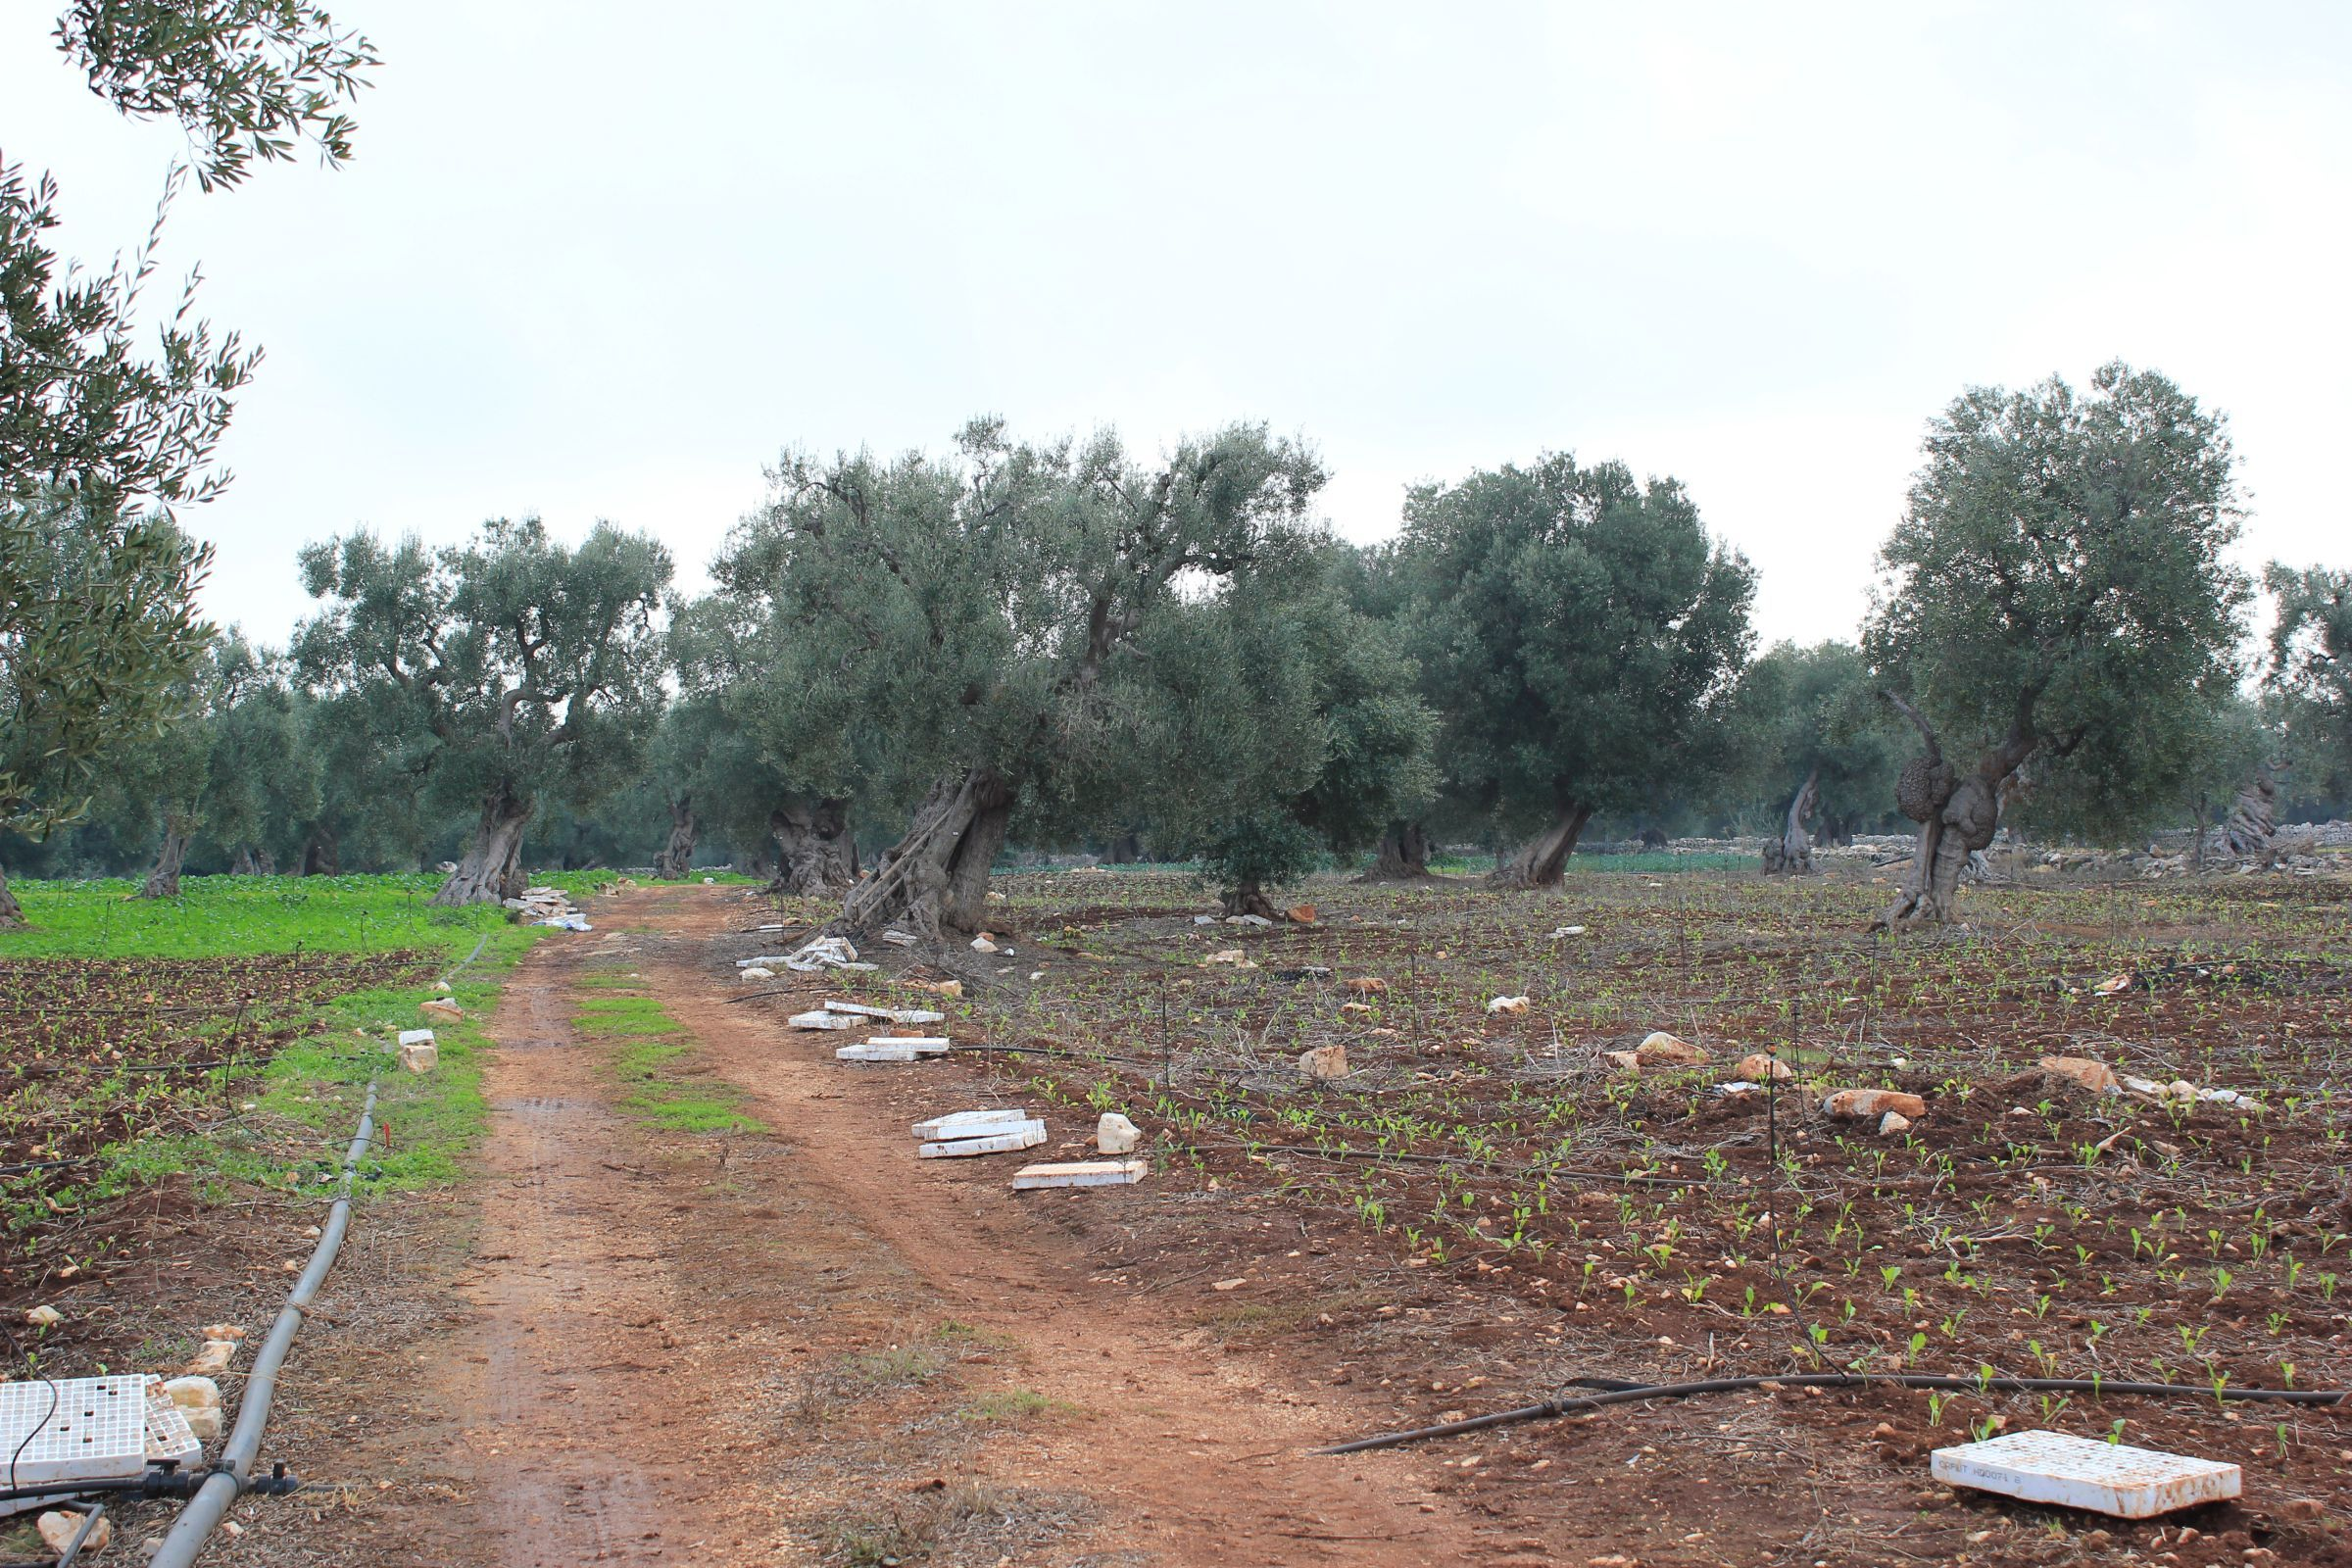 oliveto secolare - for sale - secular olive grove - puglia